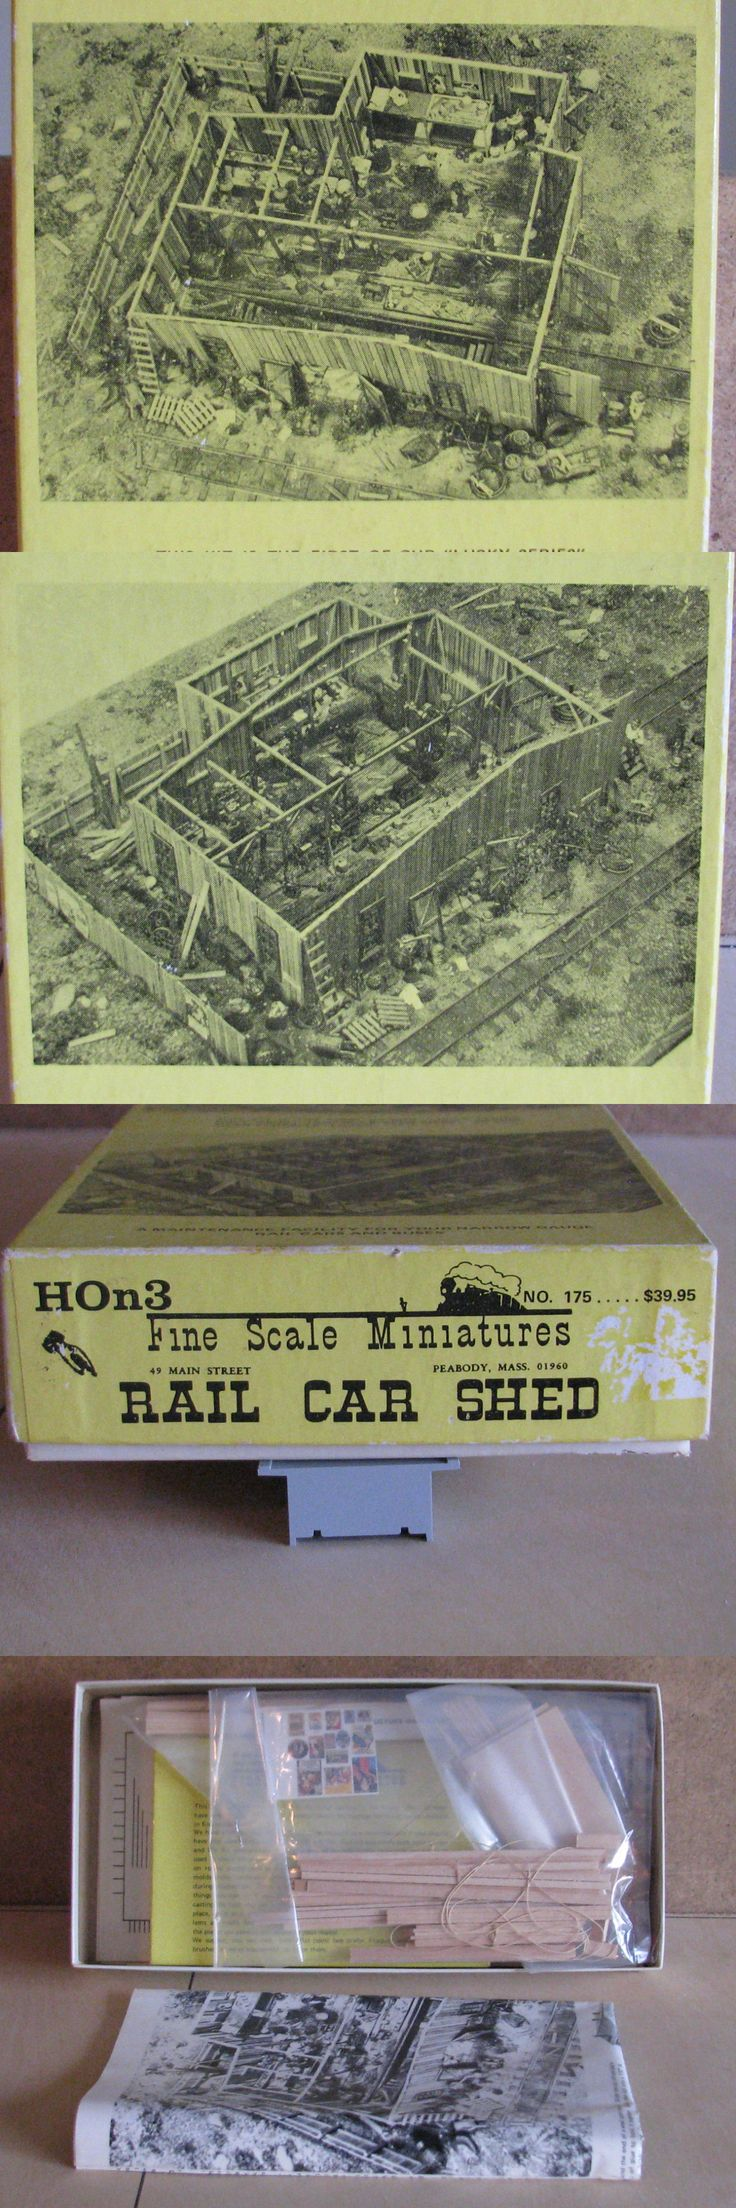 Buildings Tunnels and Bridges 117369: Fine Scale Miniatures Fsm - Rail Car Shed #175 Ho Scale -> BUY IT NOW ONLY: $127 on eBay!